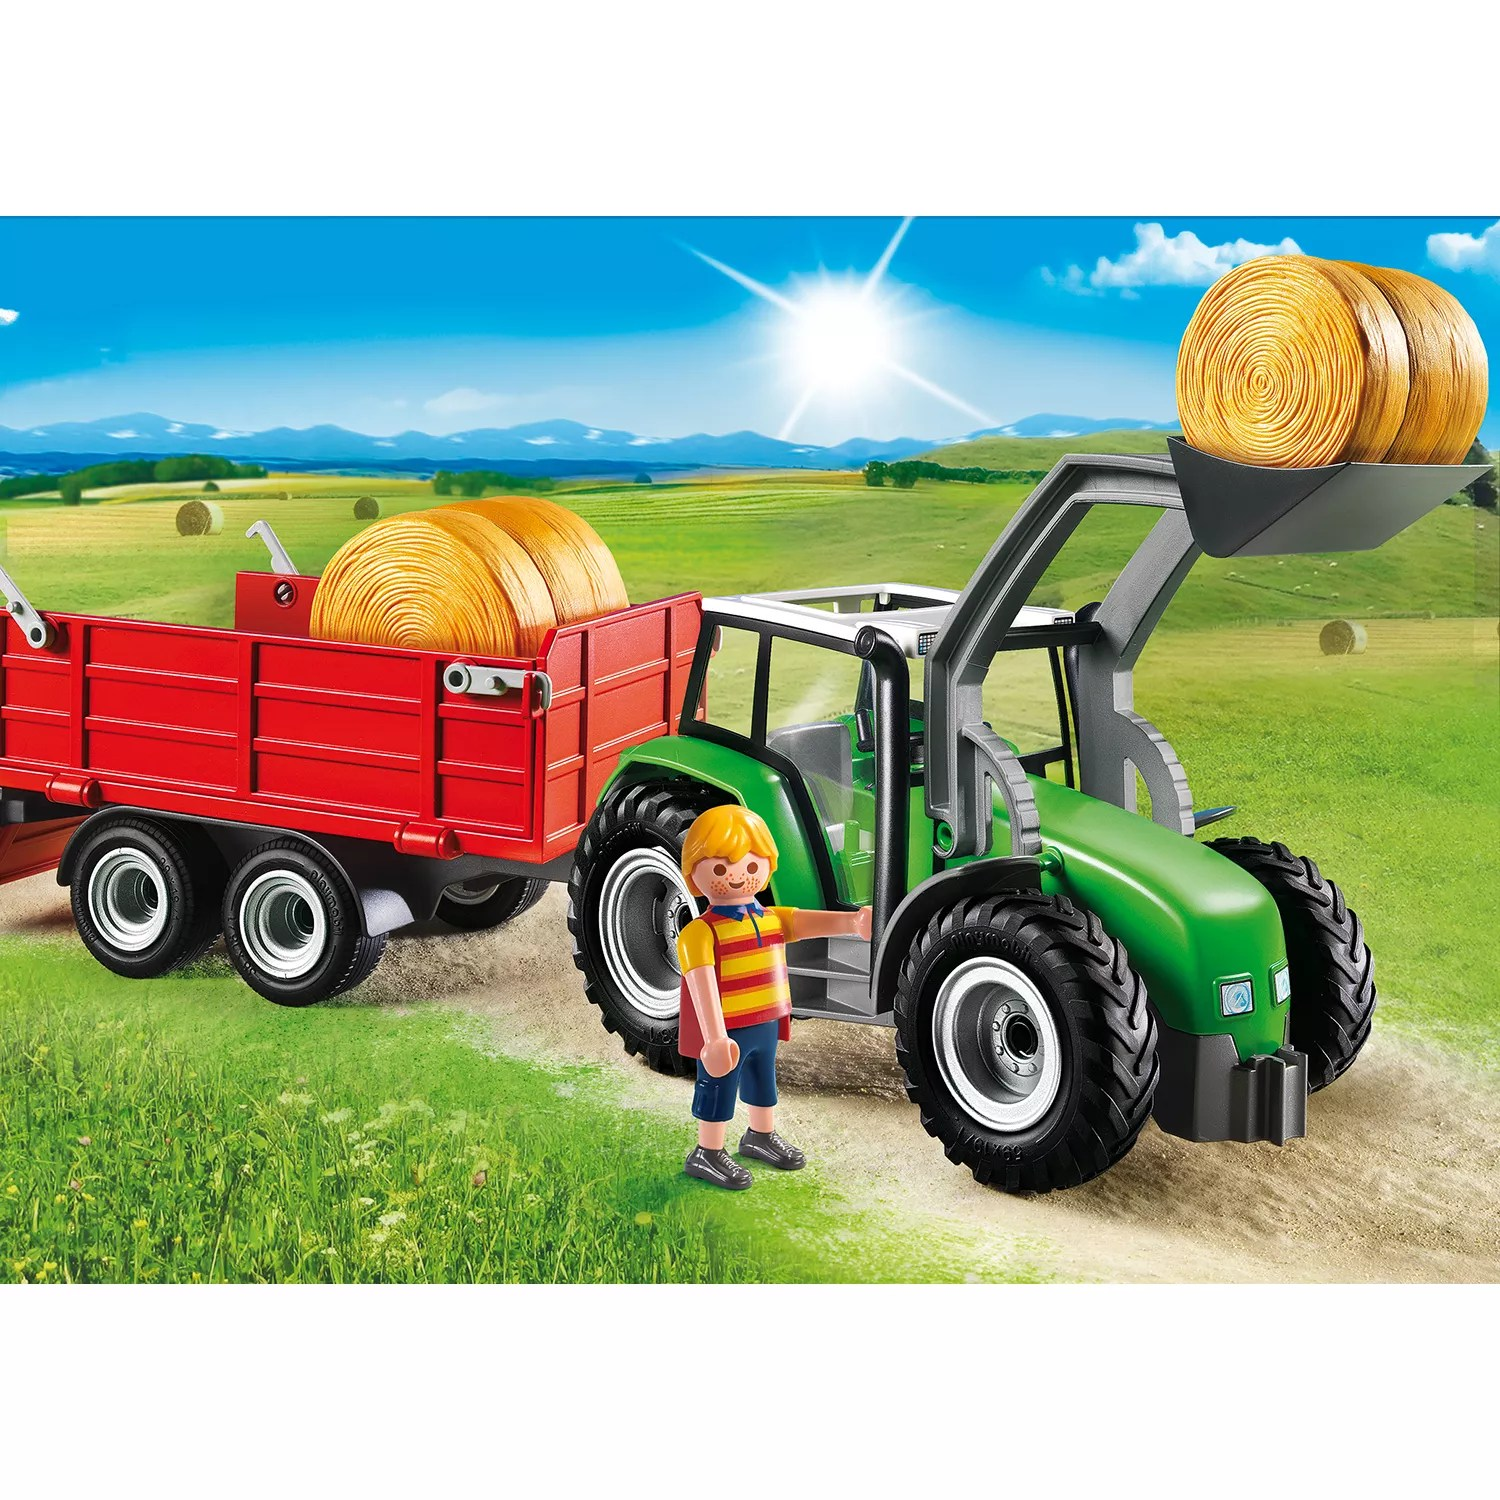 Playmobil Country Farm Large Tractor John Lewis & Partners